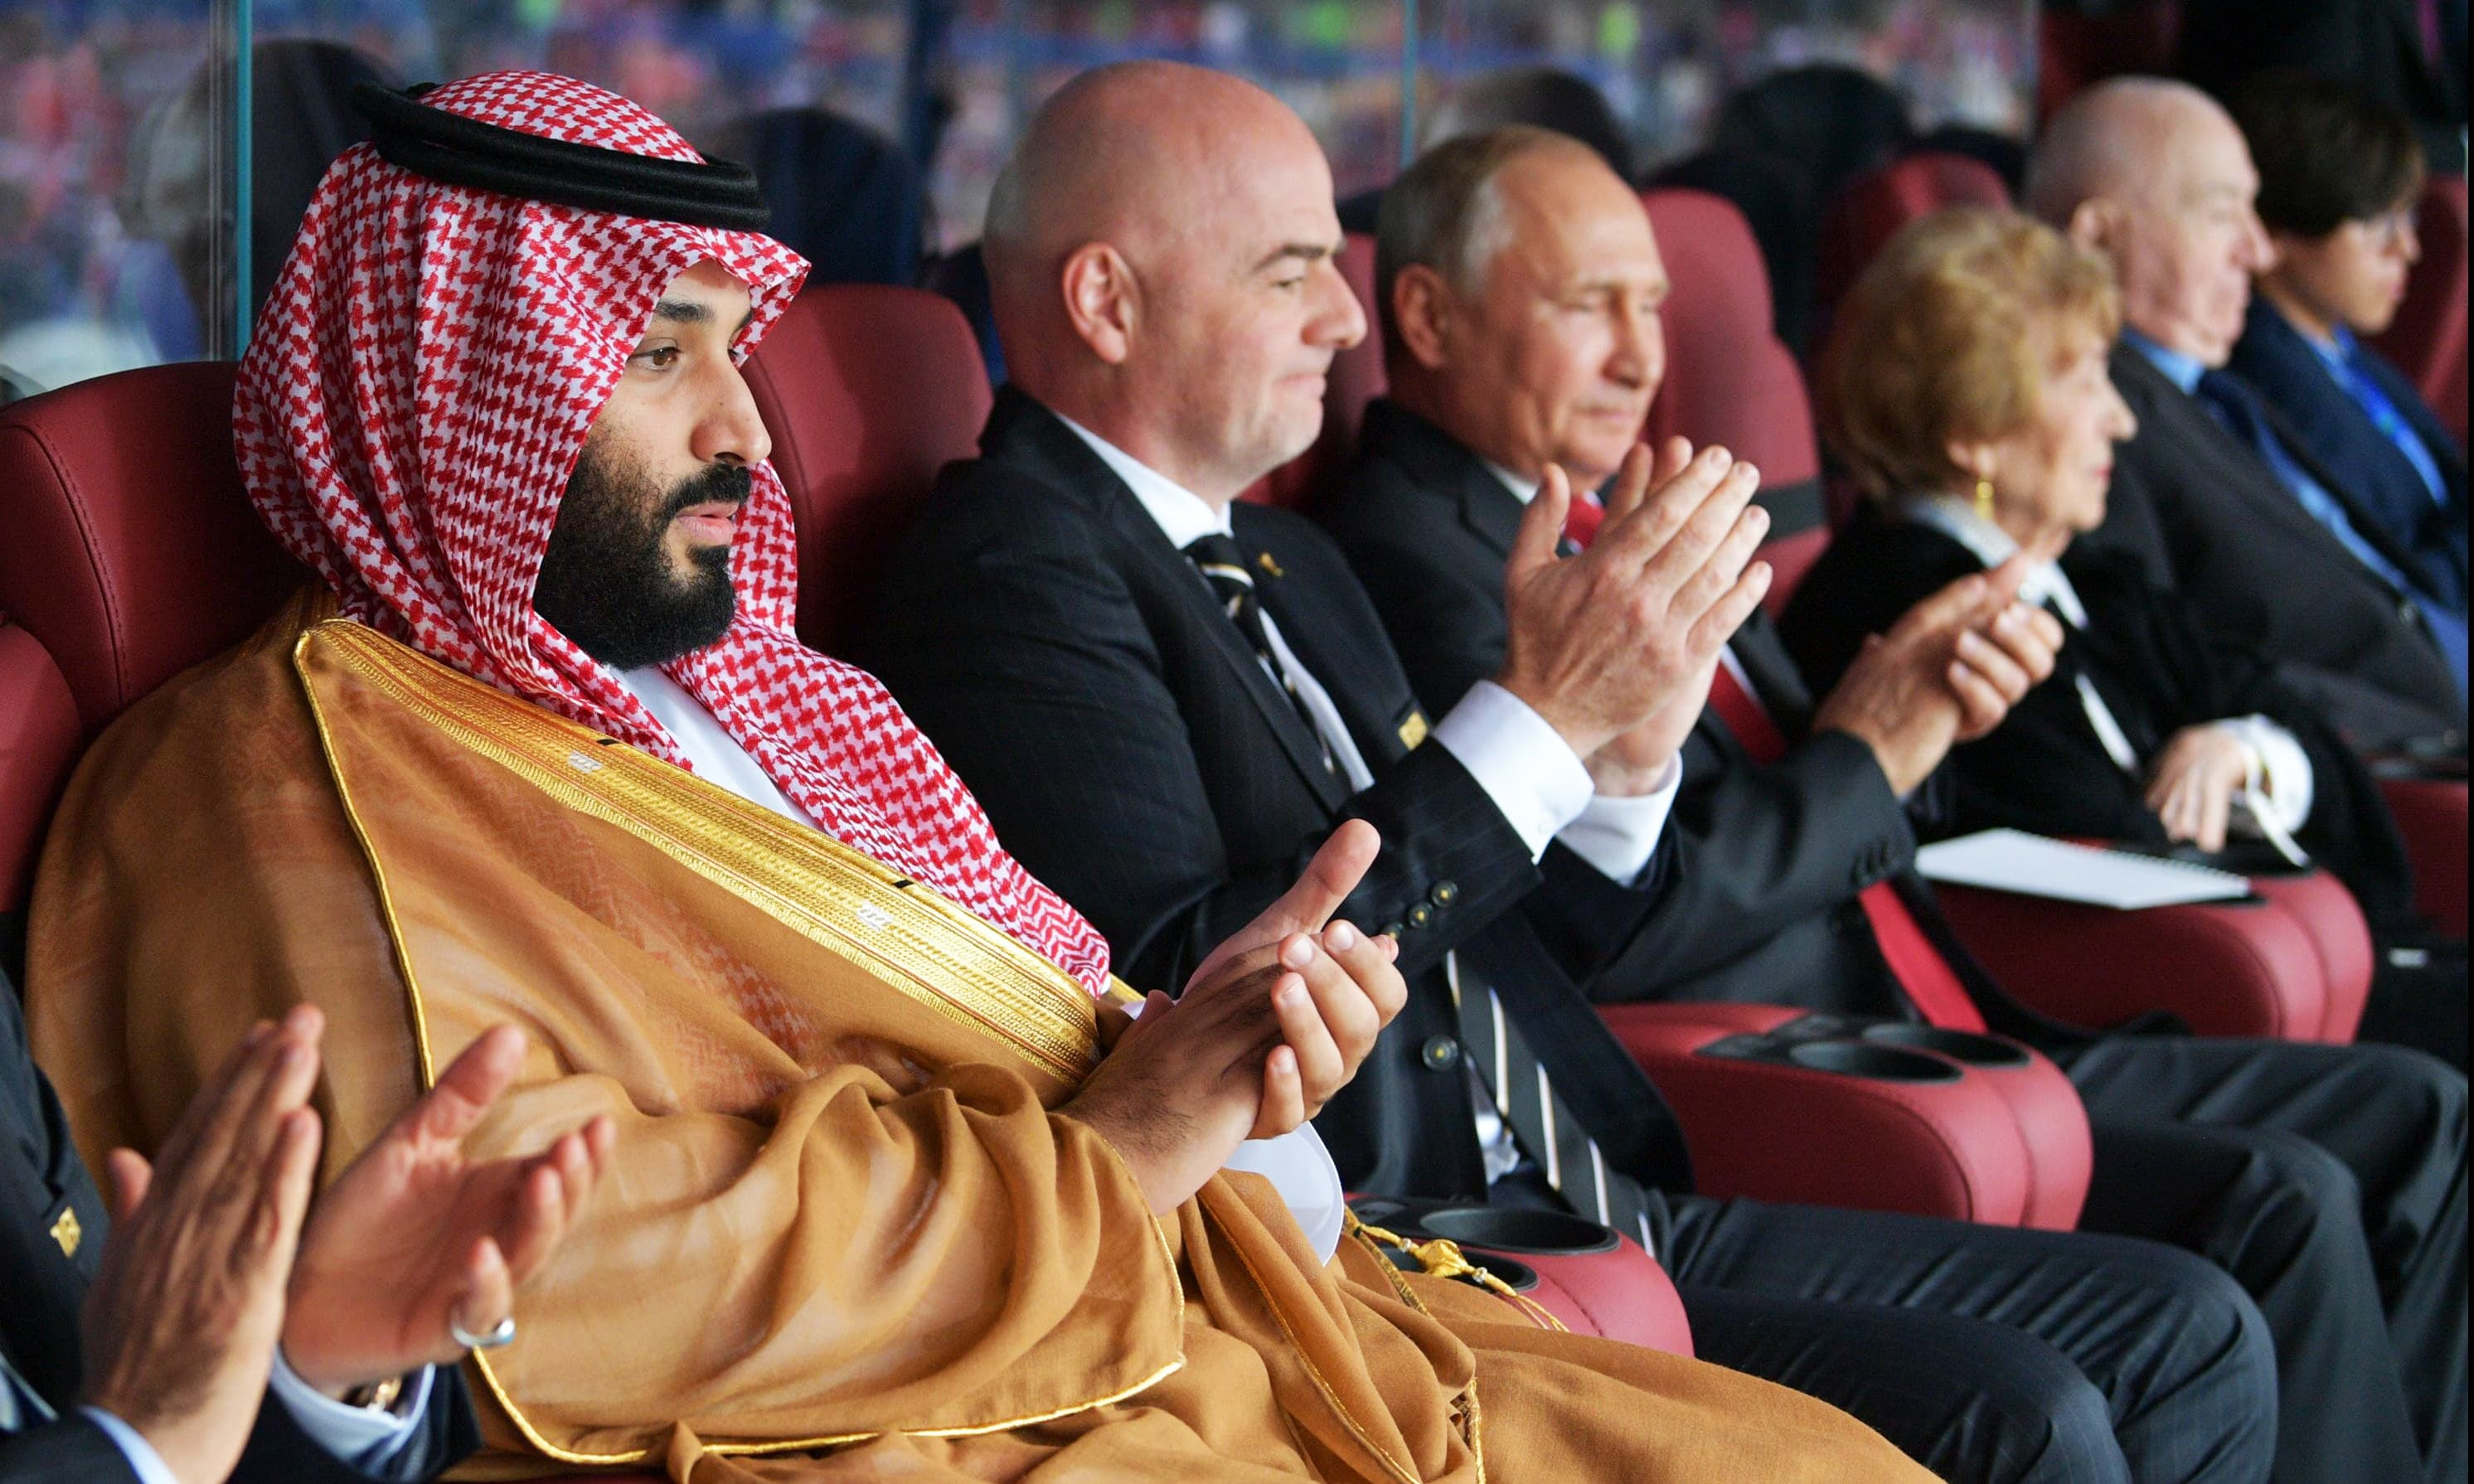 Saudi Crown Prince Mohammed bin Salman, FIFA president Gianni Infantino and Russian President Vladimir Putin watch the ceremony. — AFP